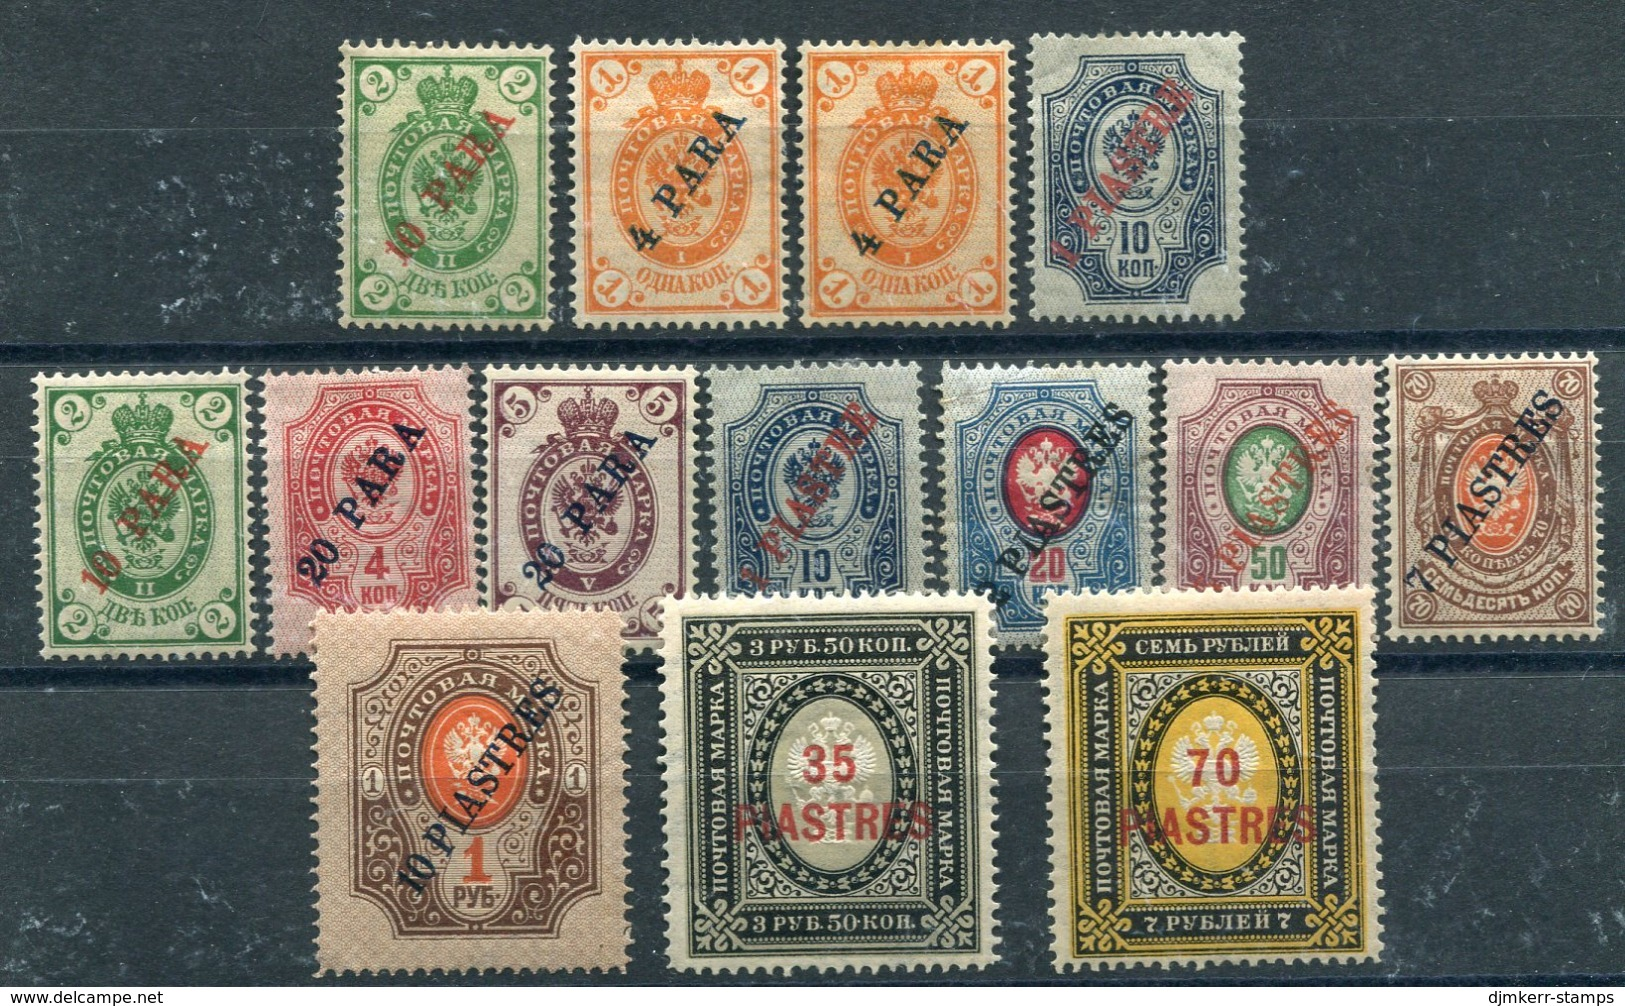 RUSSIAN POST In The LEVANT 1900-10 Surcharges On Arms With Both Papers And 1910 20 Pa On 5 K.. LHM / *.  Michel 30-3620x - Levante